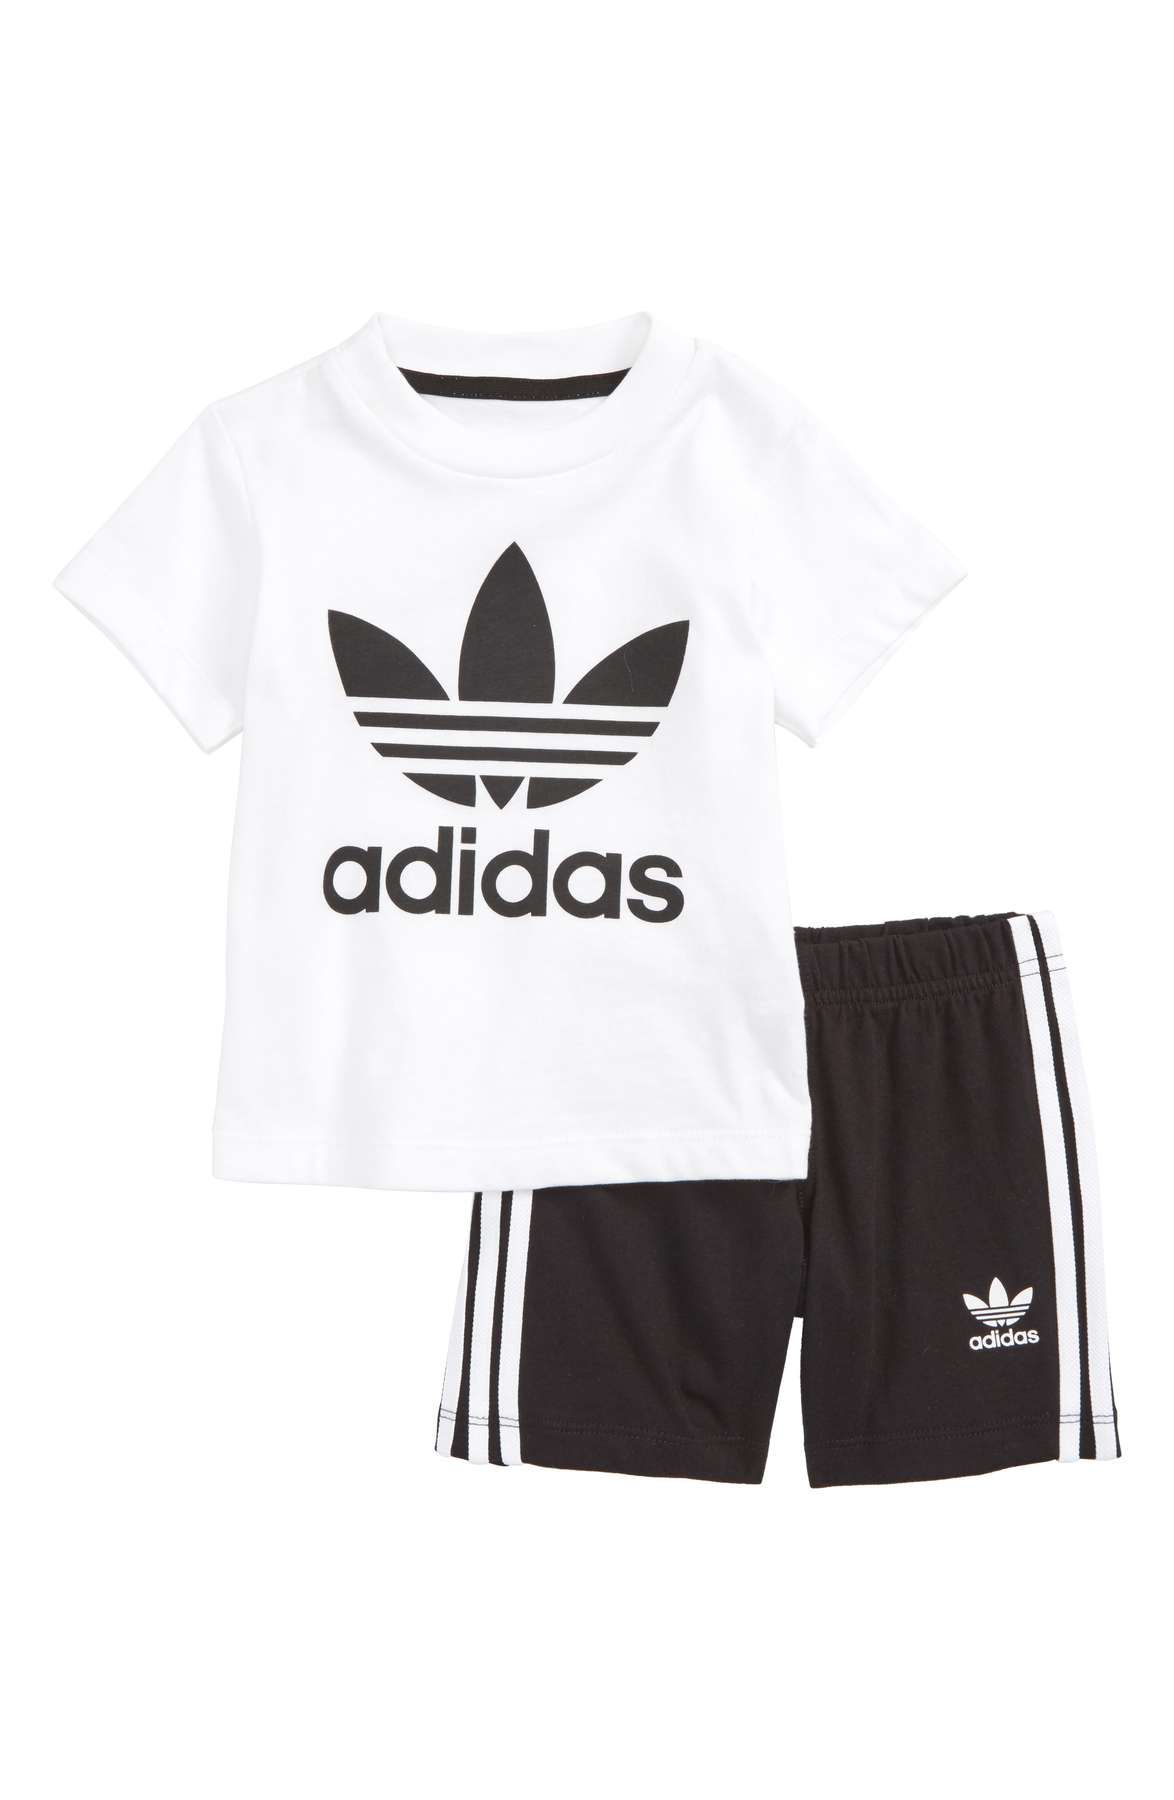 Shirt Adidas Graphic Shorts Originals baby Image Main amp; T Set 1AqBZcpy